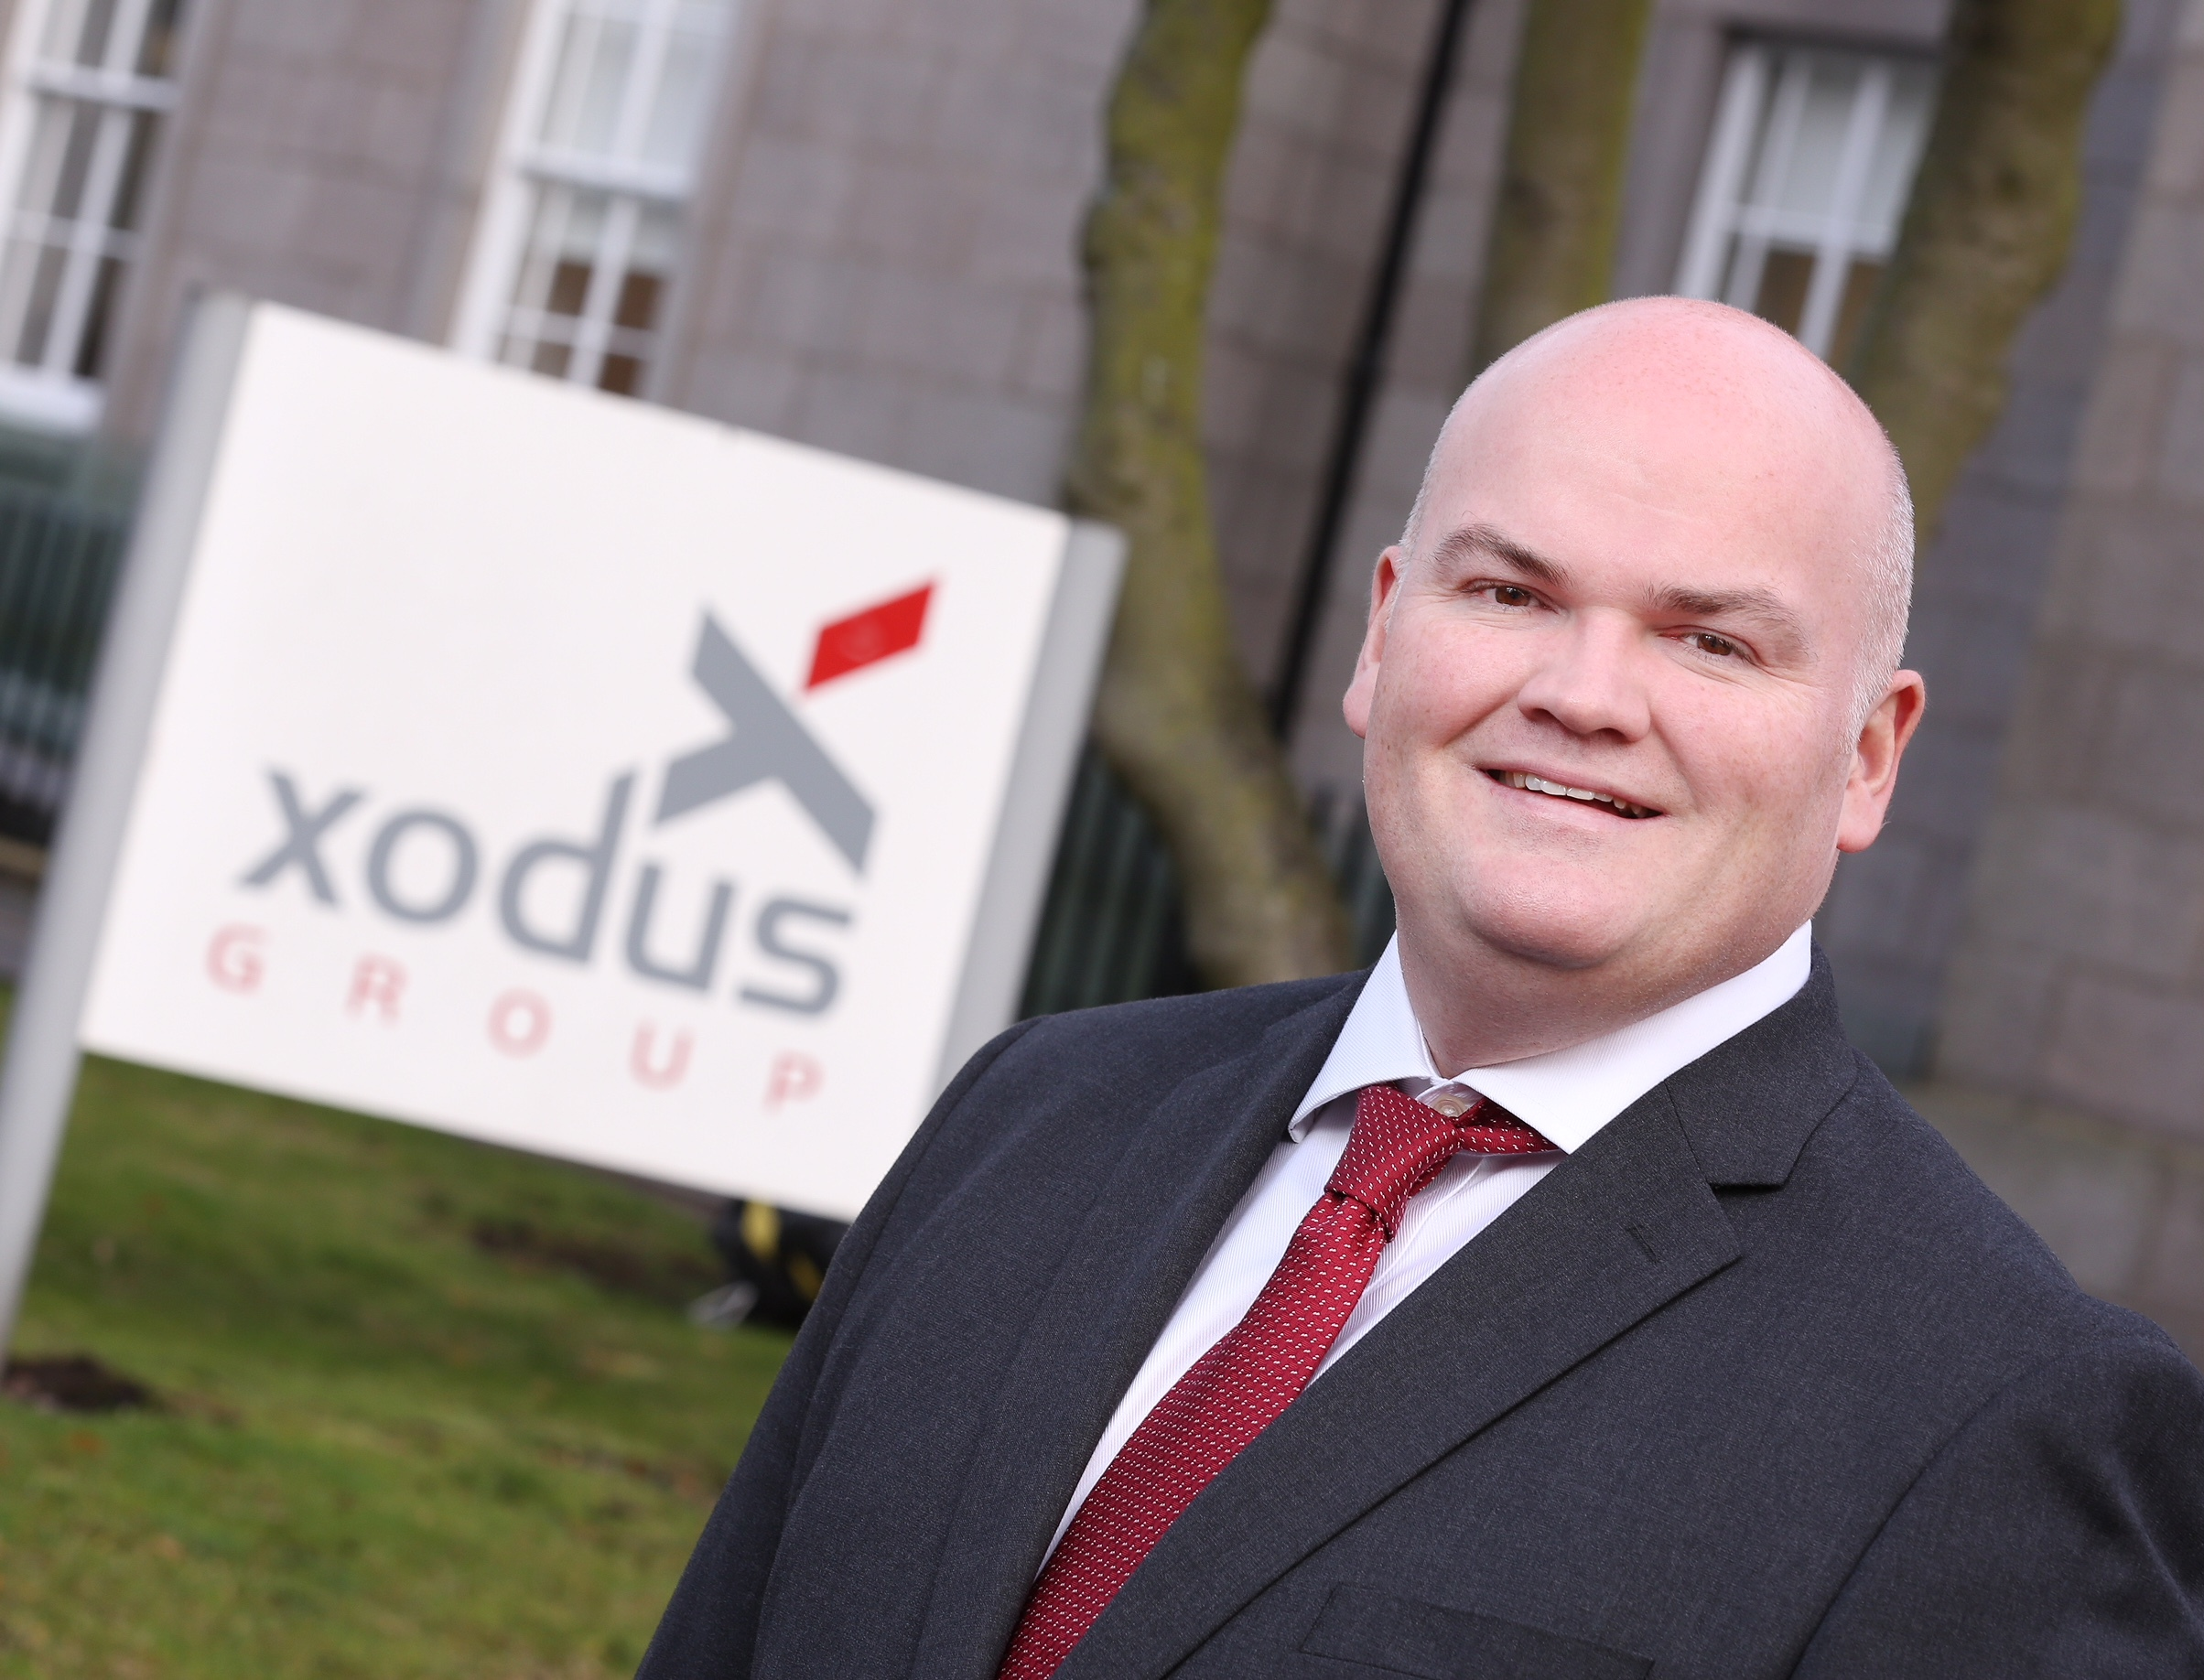 Andrew Wylie, Operations Director, Scotland and Norway at Xodus Group